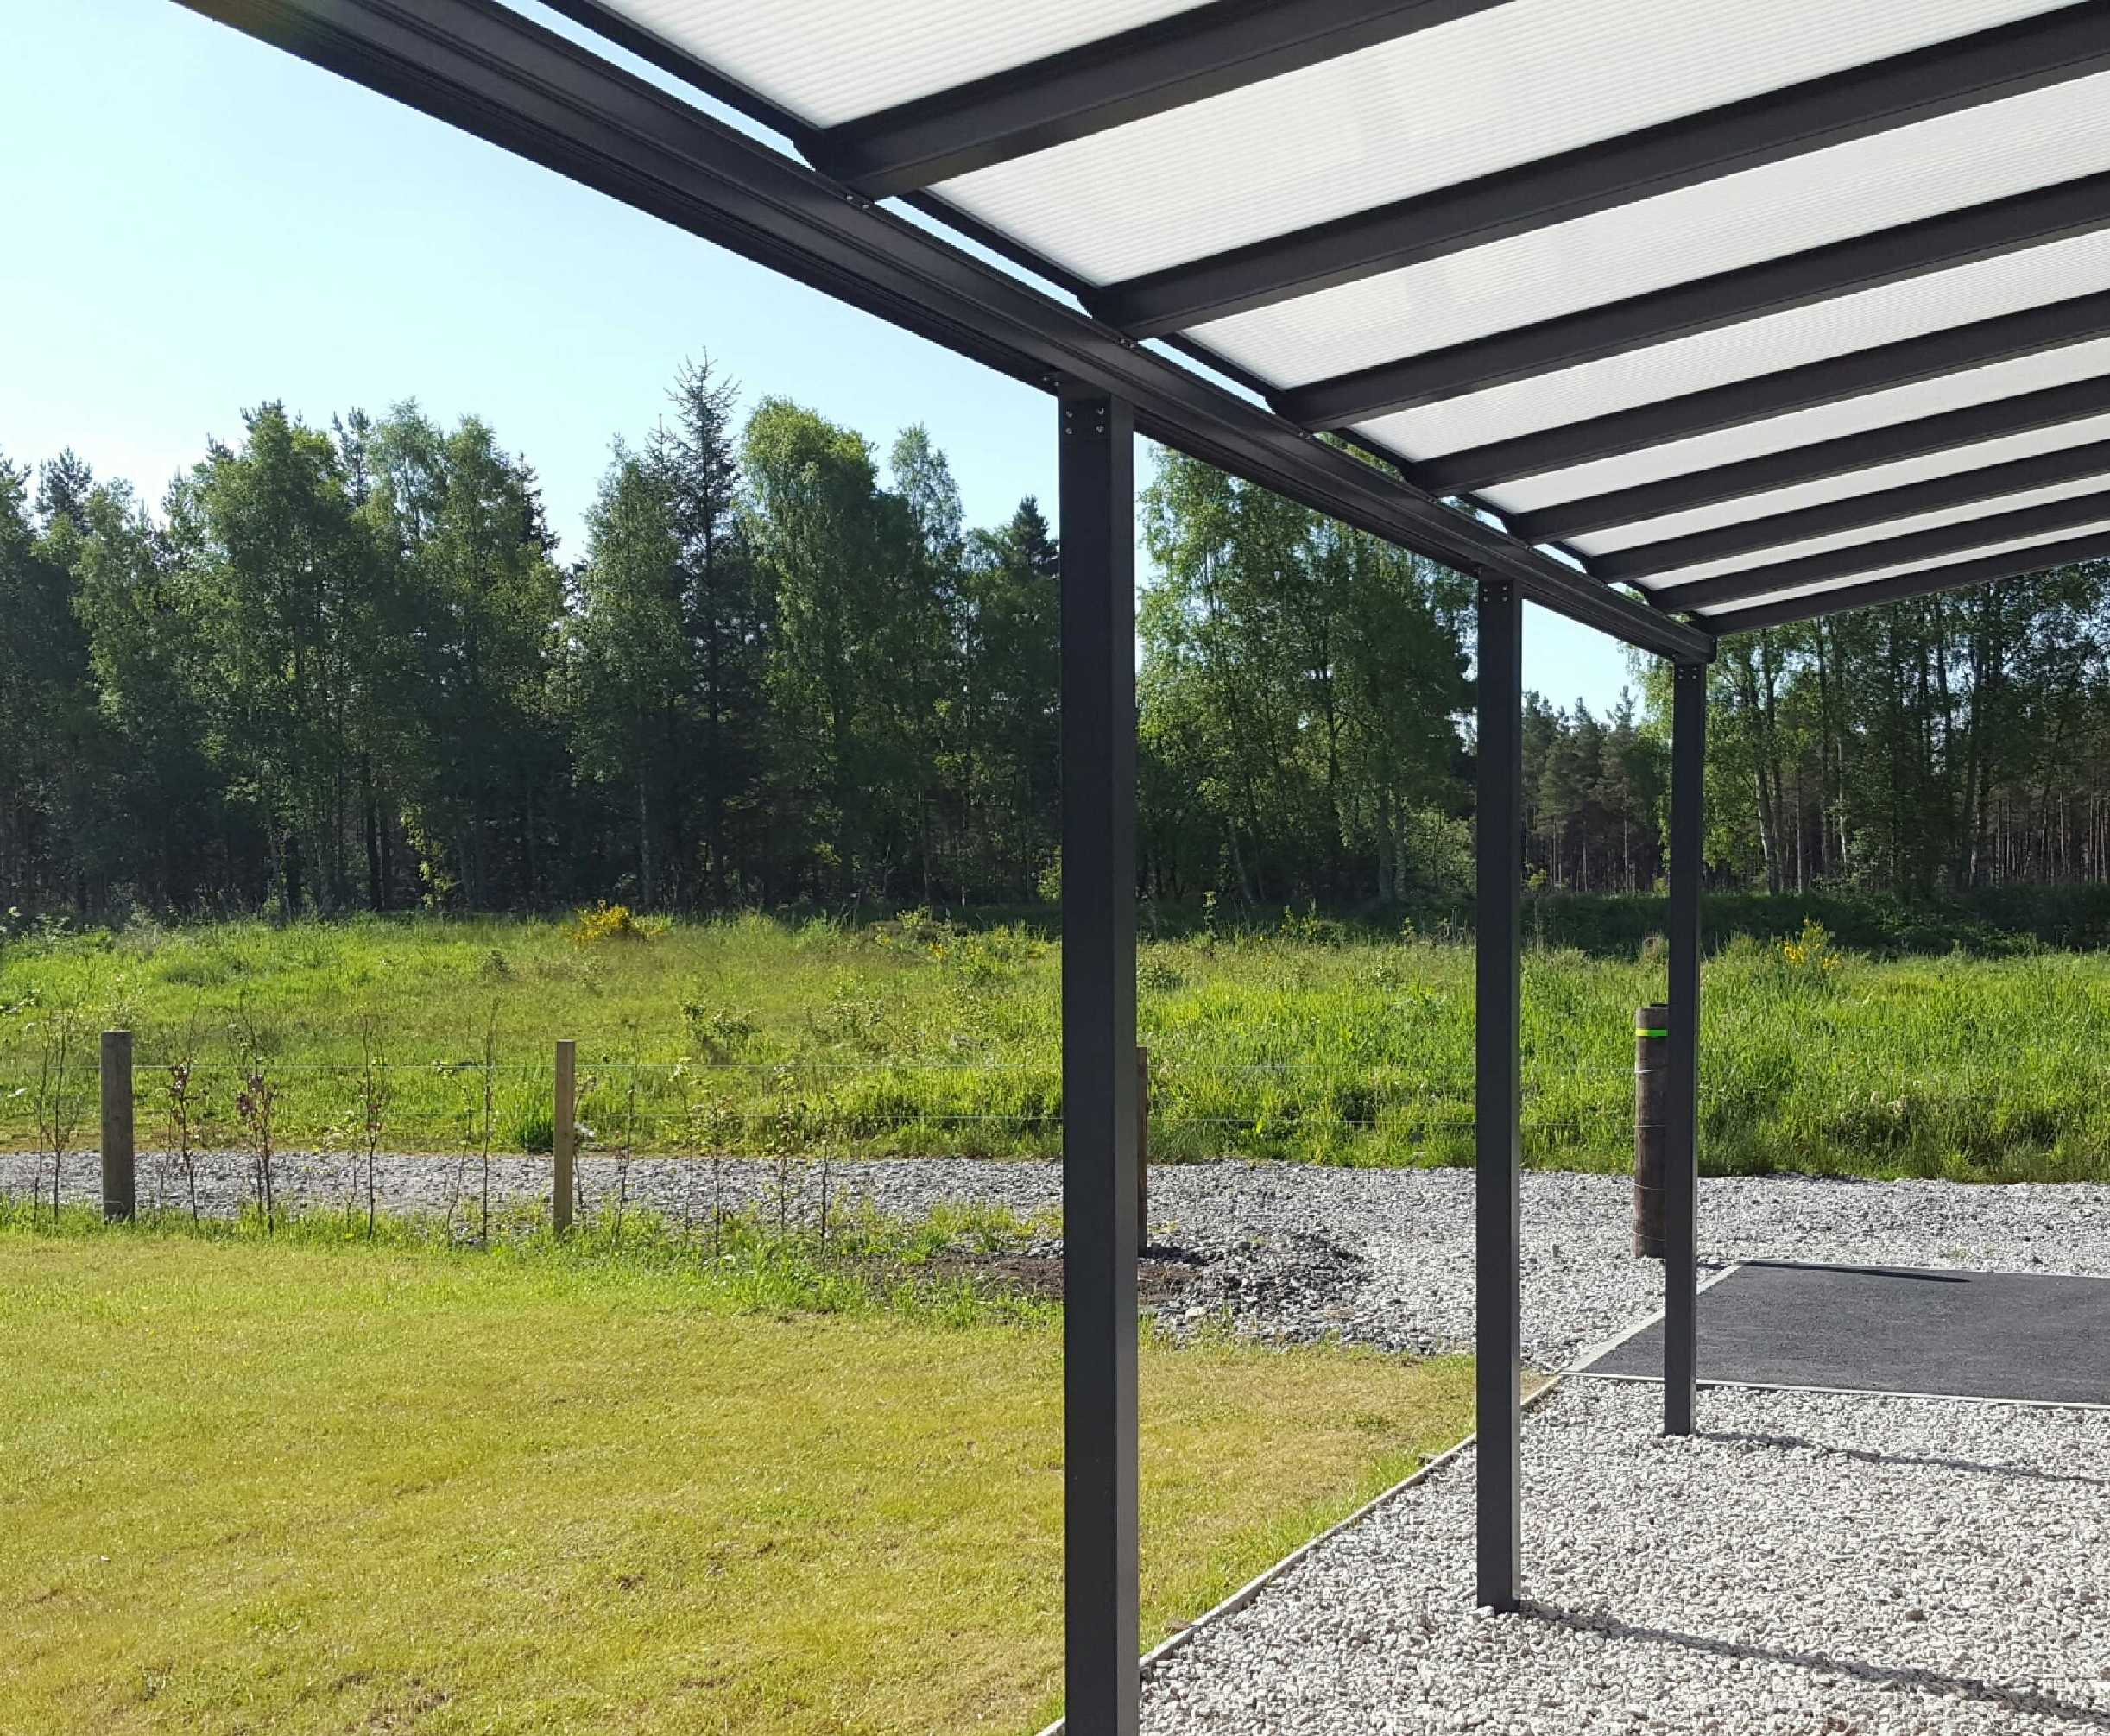 Omega Smart Lean-To Canopy, Anthracite Grey, UNGLAZED for 6mm Glazing - 2.8m (W) x 3.5m (P), (2) Supporting Posts